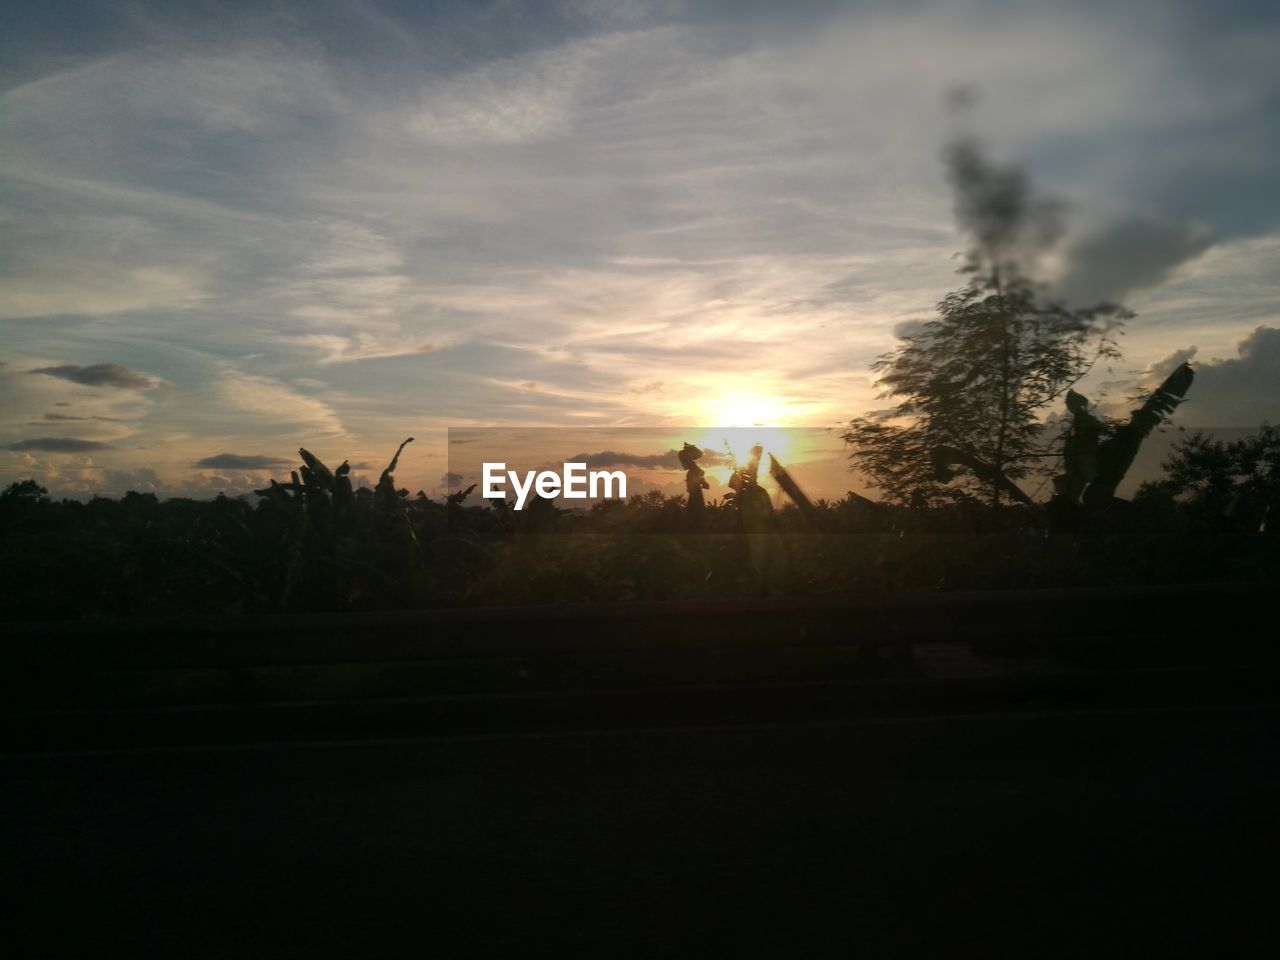 sunset, sun, sky, silhouette, nature, tree, no people, beauty in nature, landscape, scenics, tranquility, tranquil scene, growth, outdoors, day